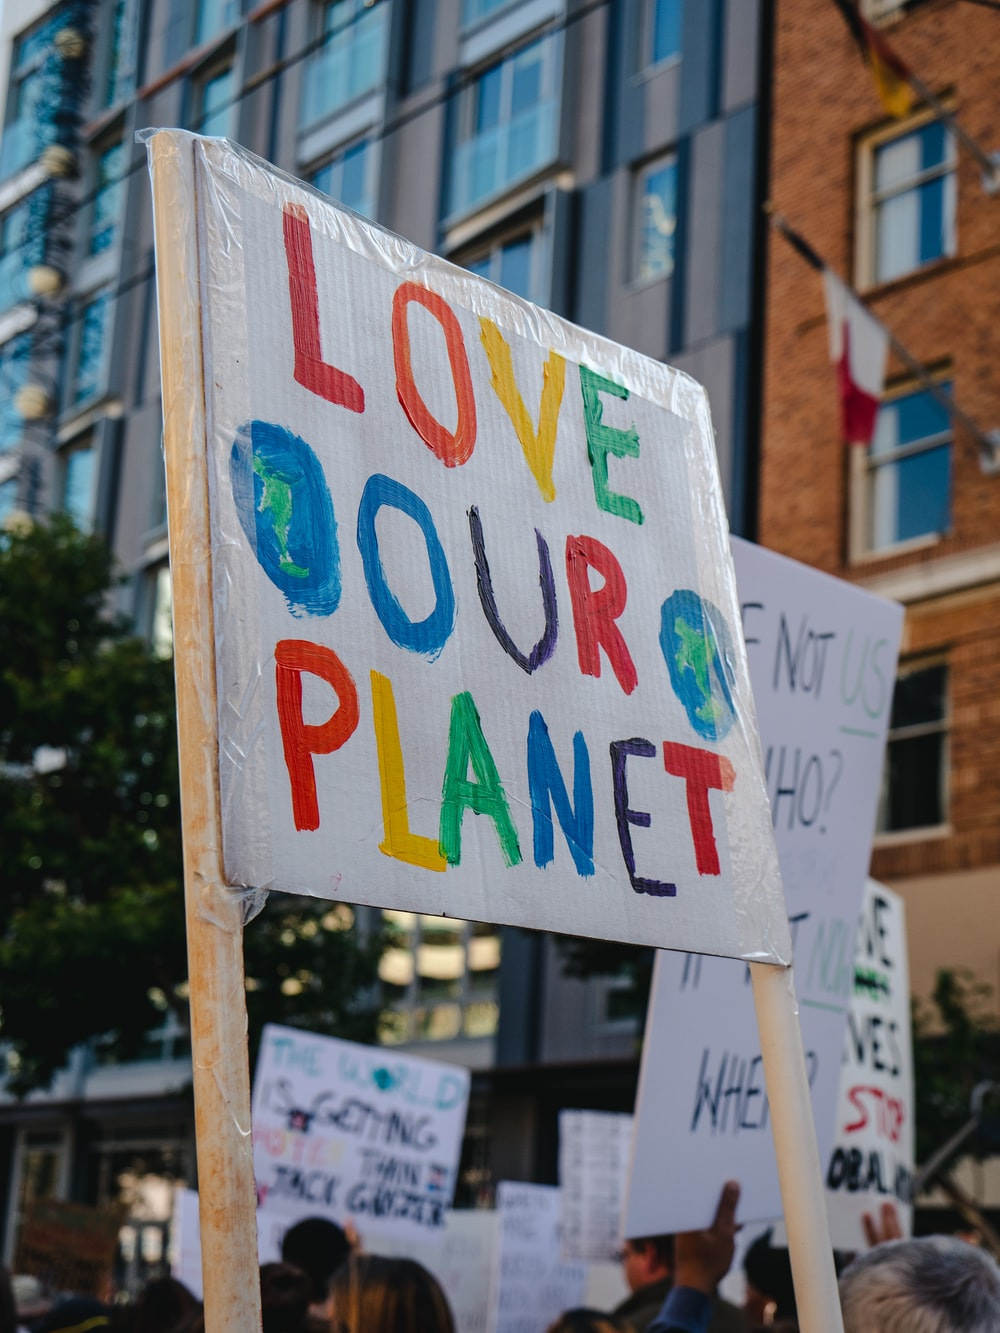 love our planet signage